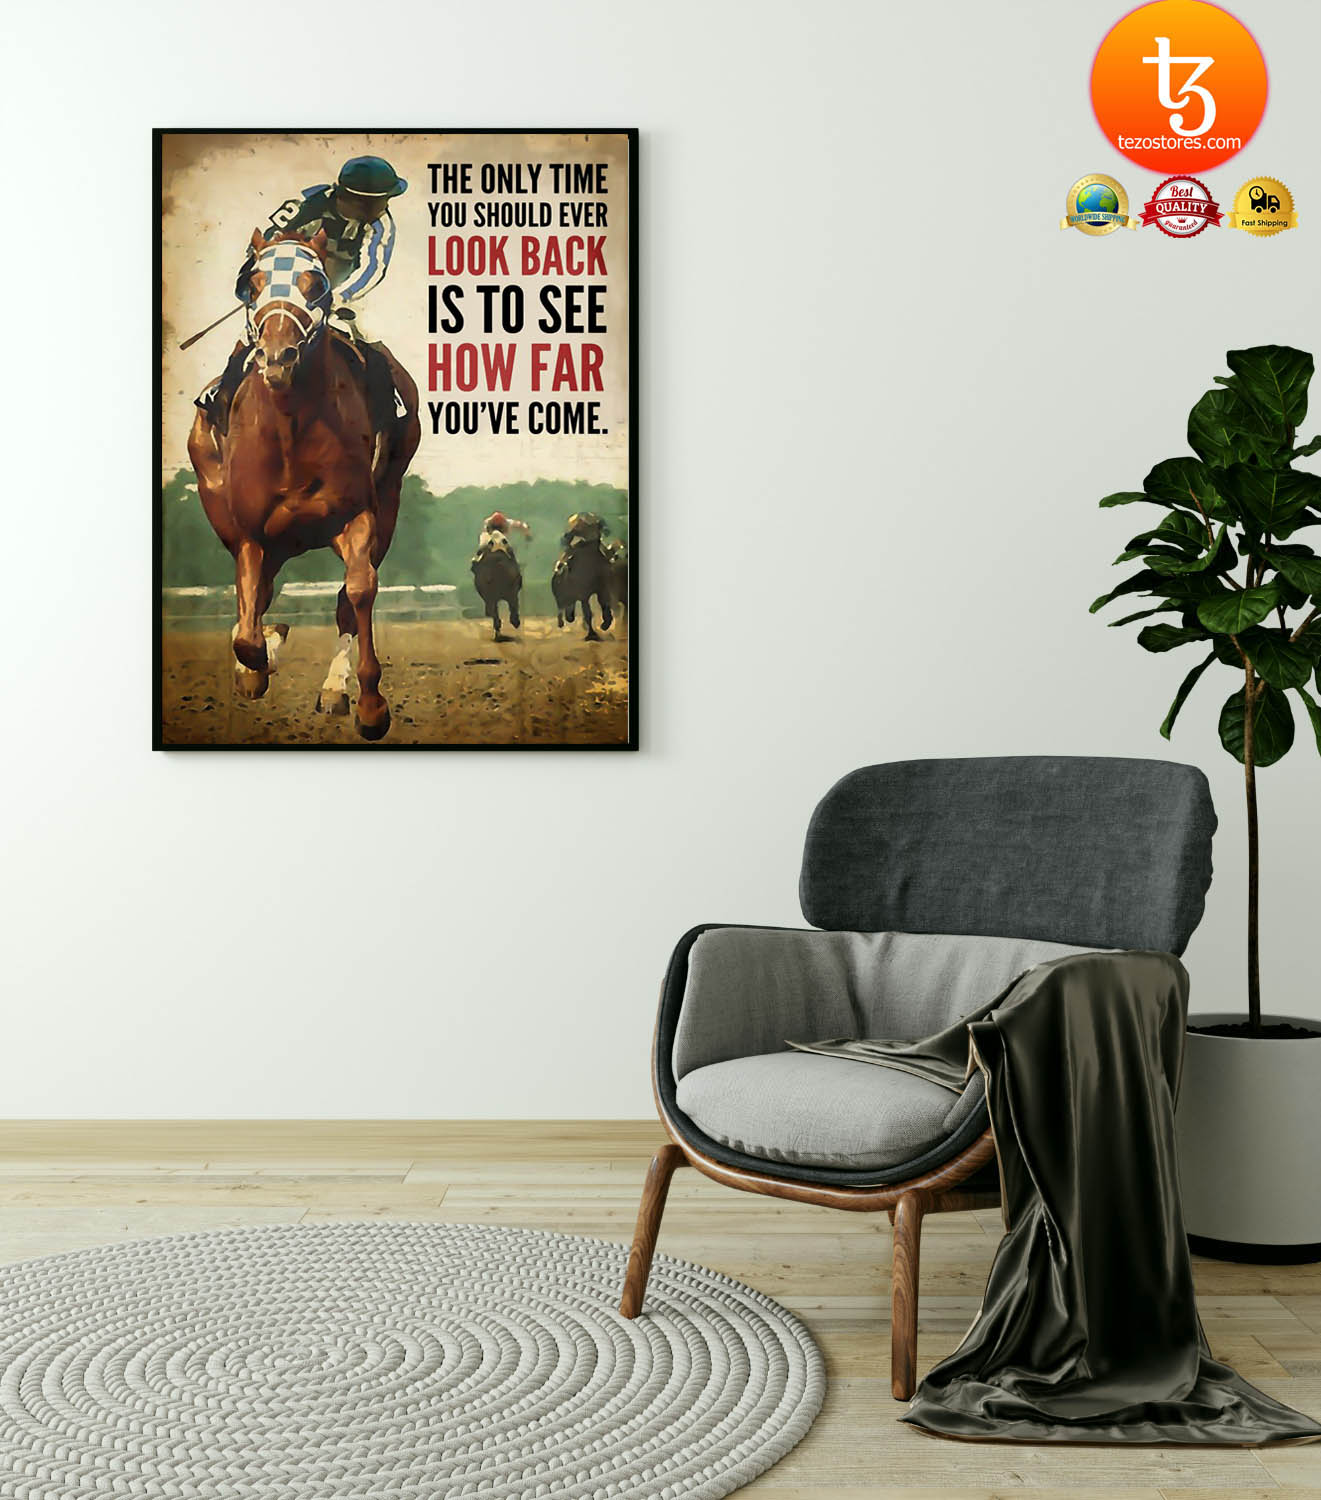 The only time you should ever look back is to see how far you've come poster 3